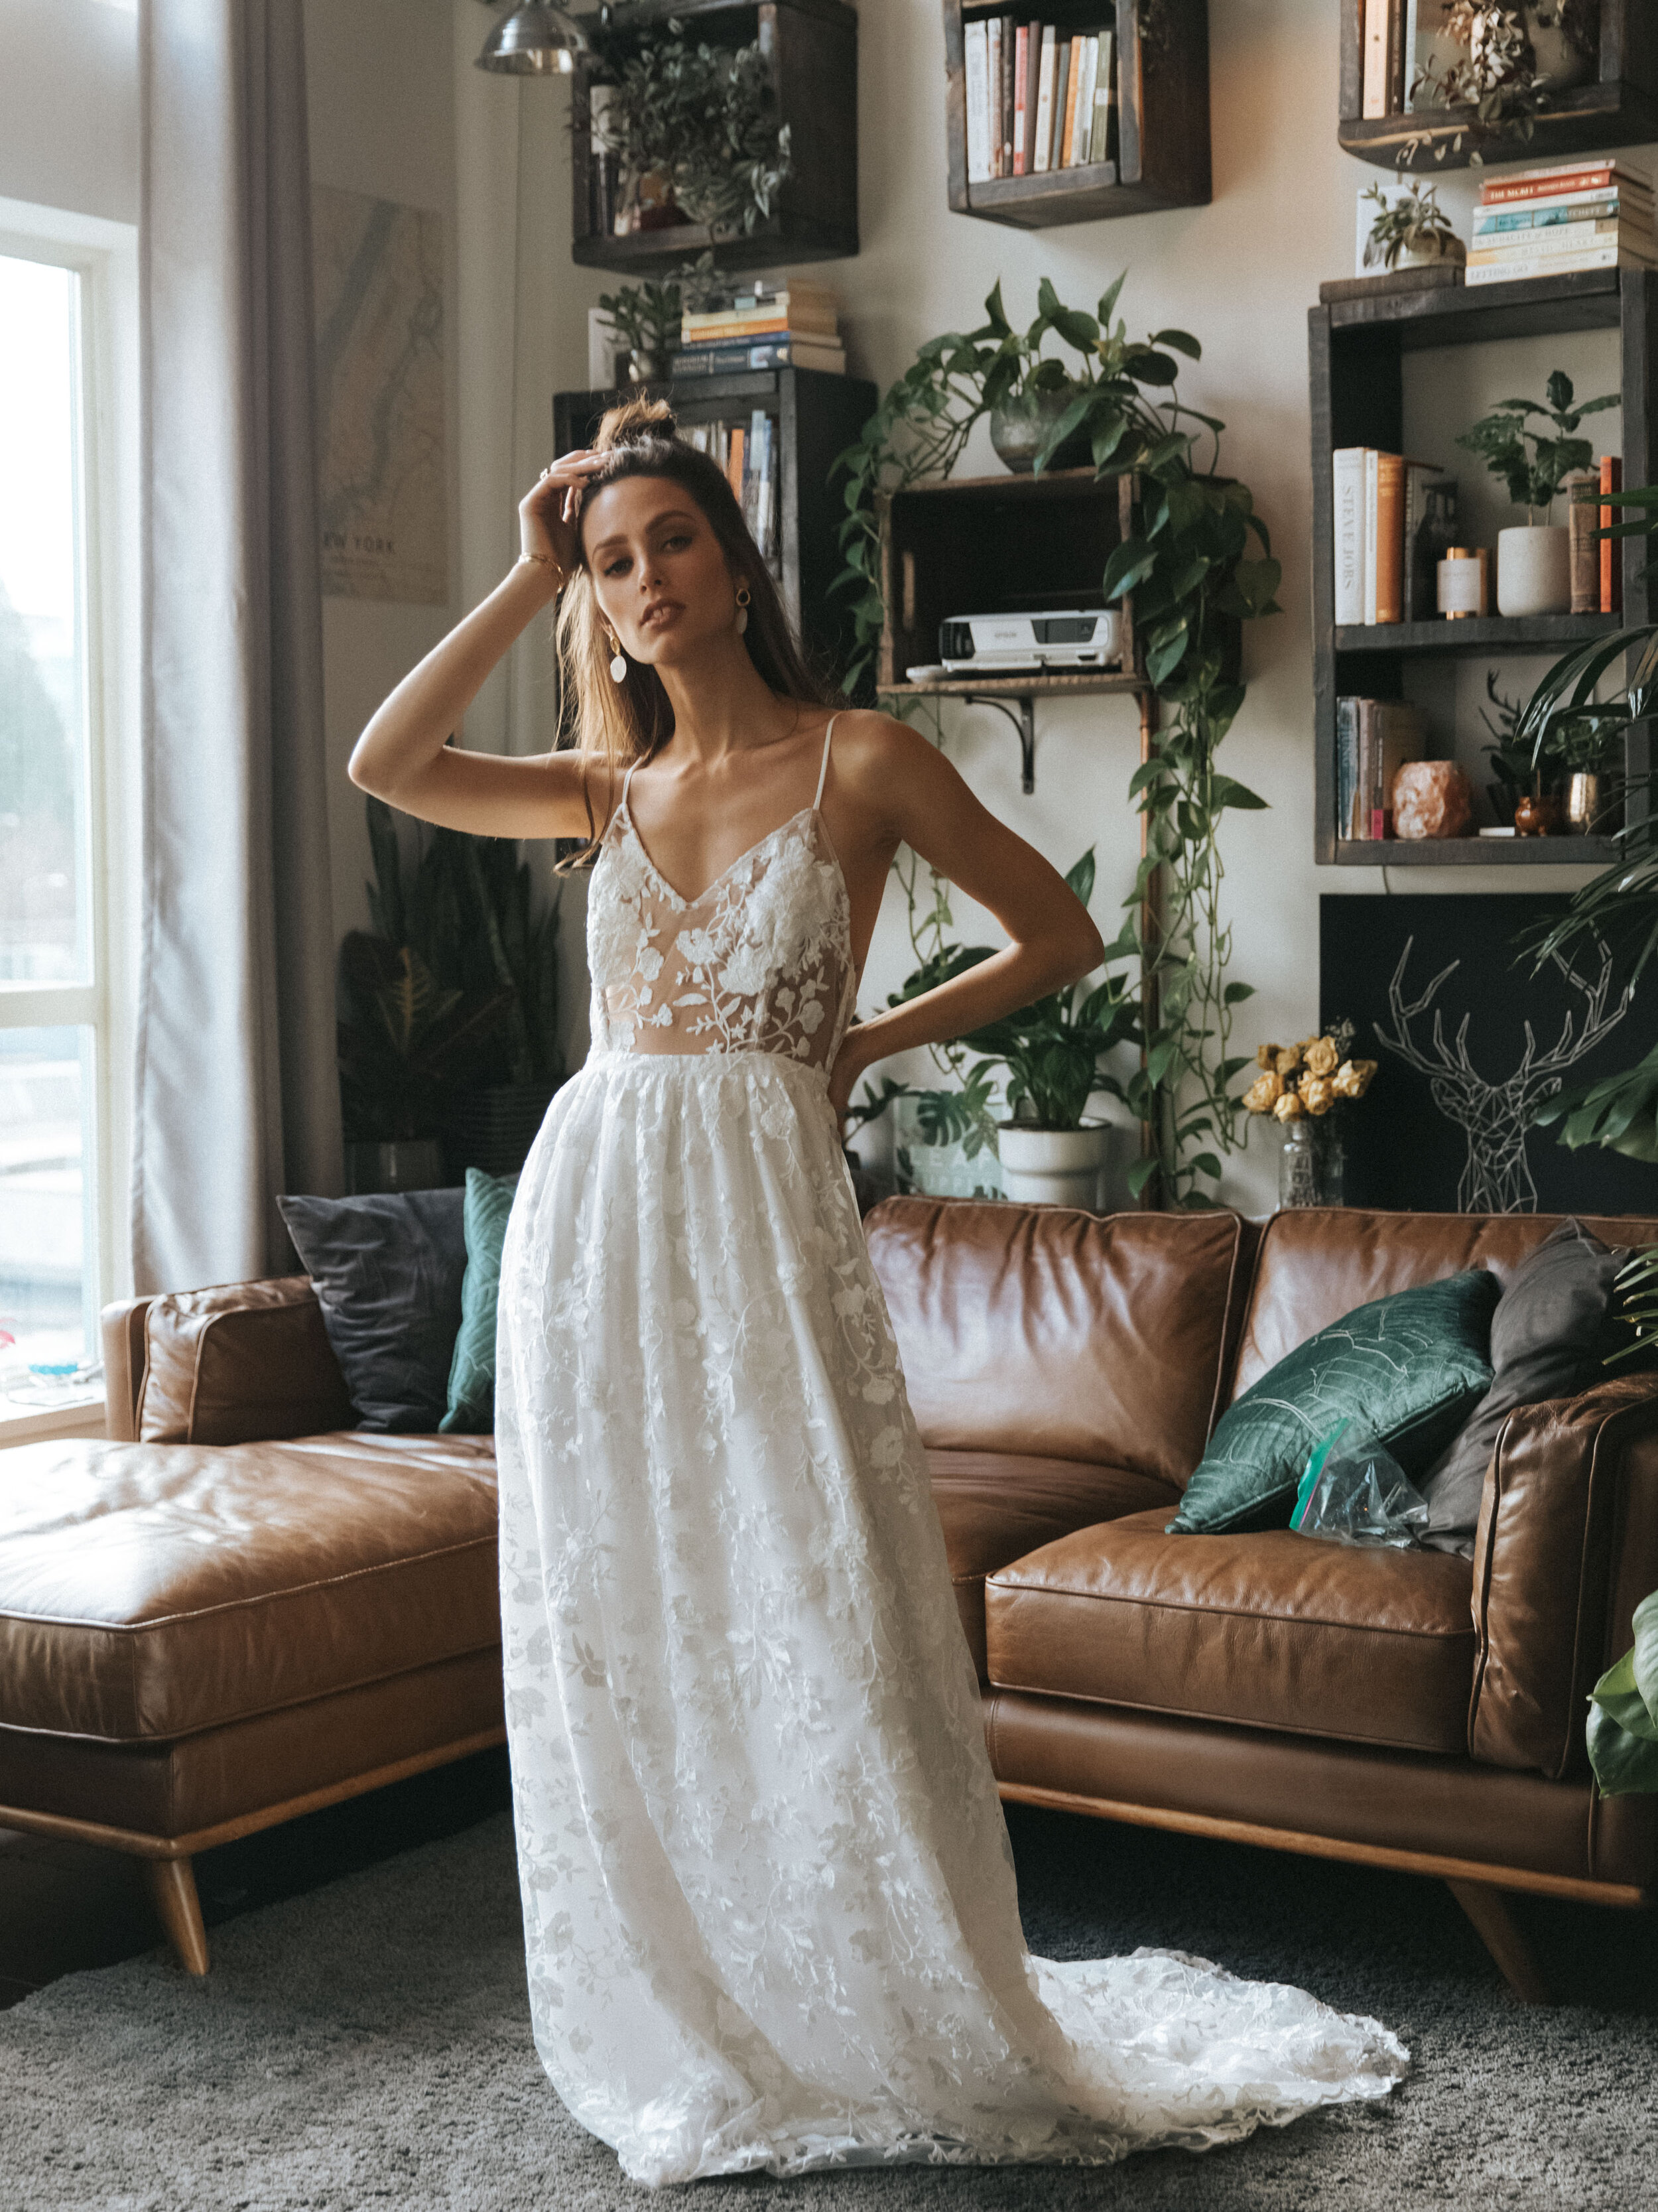 Park & Fifth's upcoming modern bridal collection.